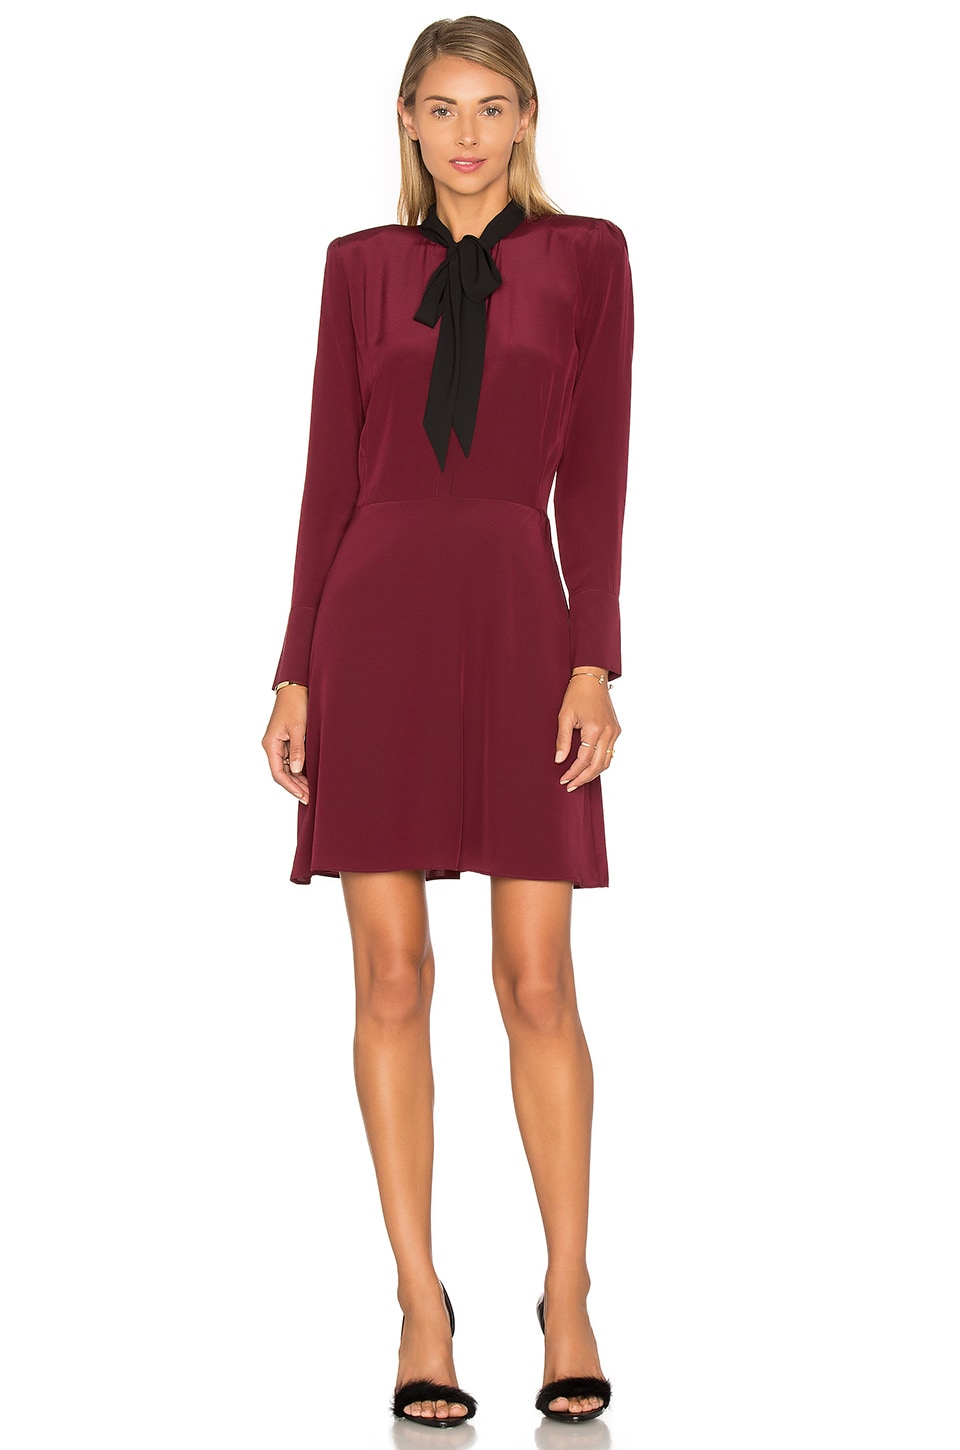 Long Sleeve Tie Neck Dress by The Kooples